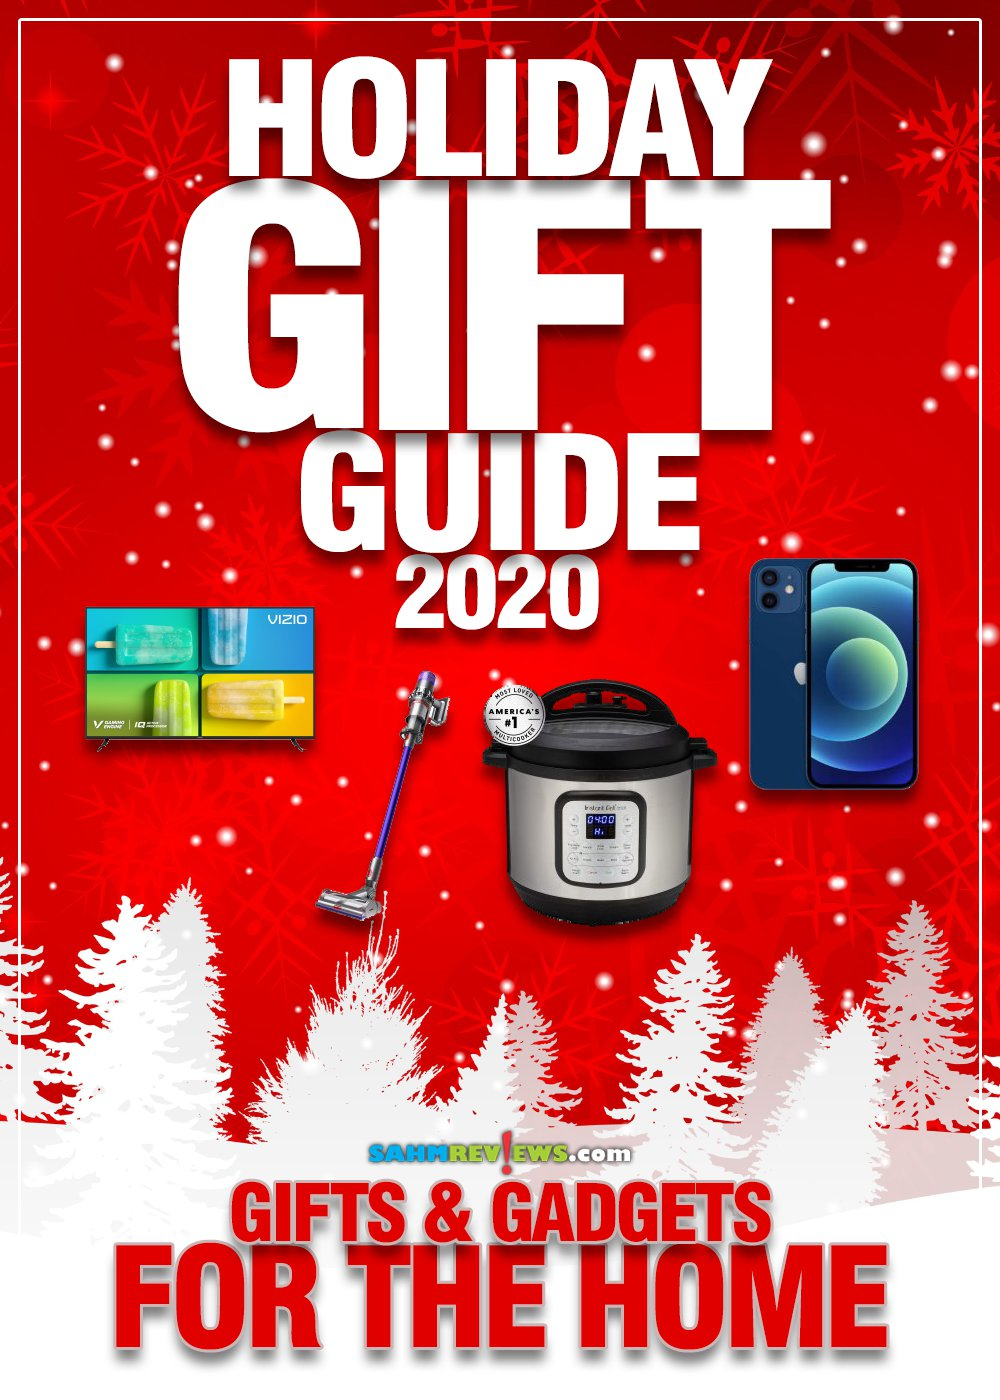 Looking for gift ideas for the home or maybe even electronic gadgets? We've got the full list of what everyone wants under the tree this year! - SahmReviews.com